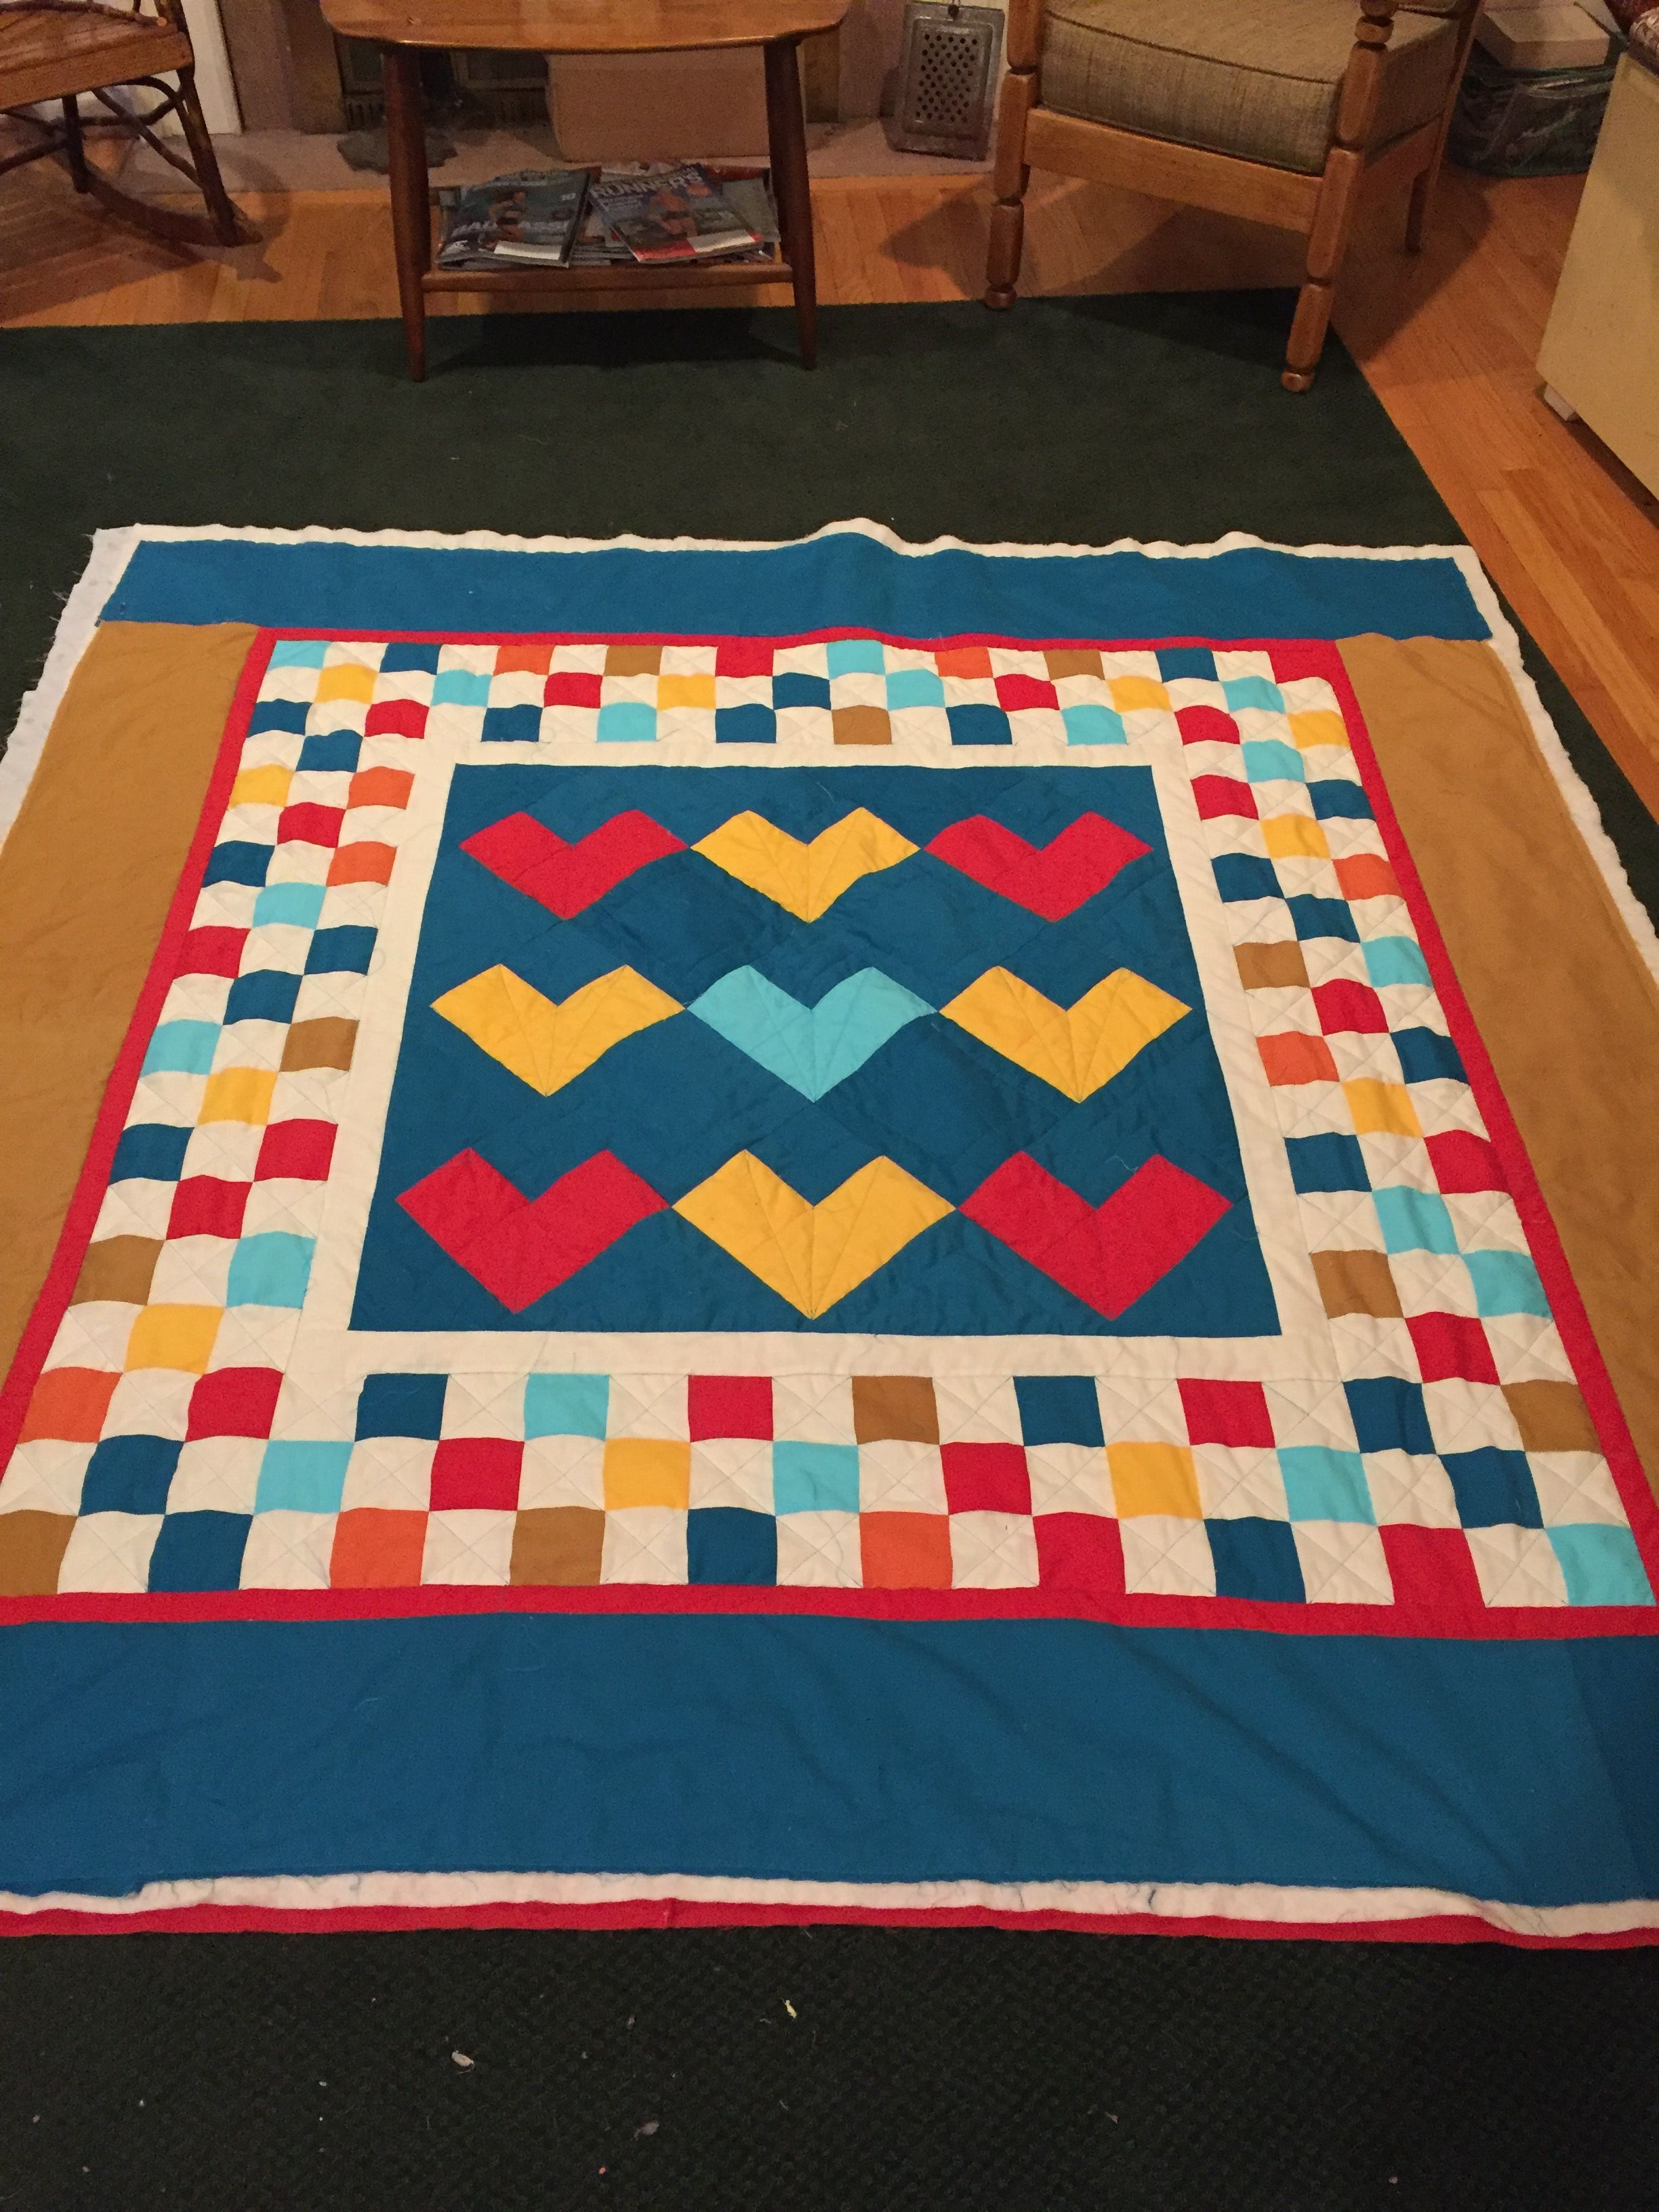 Pin by Jackie B. on My quilts (With images) | Contemporary ...